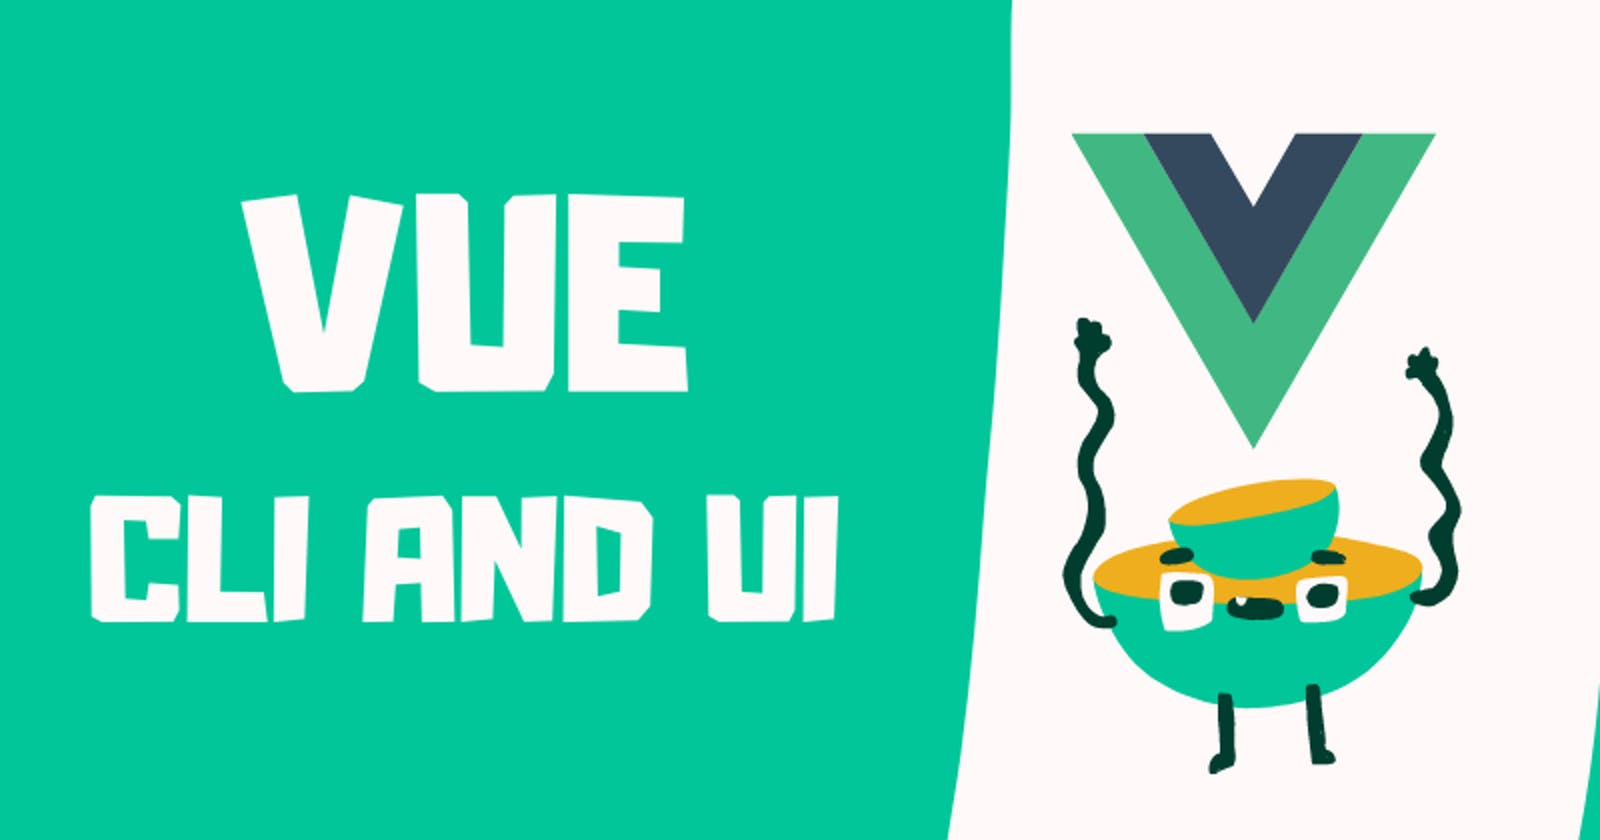 Get Started With Vue CLI and UI